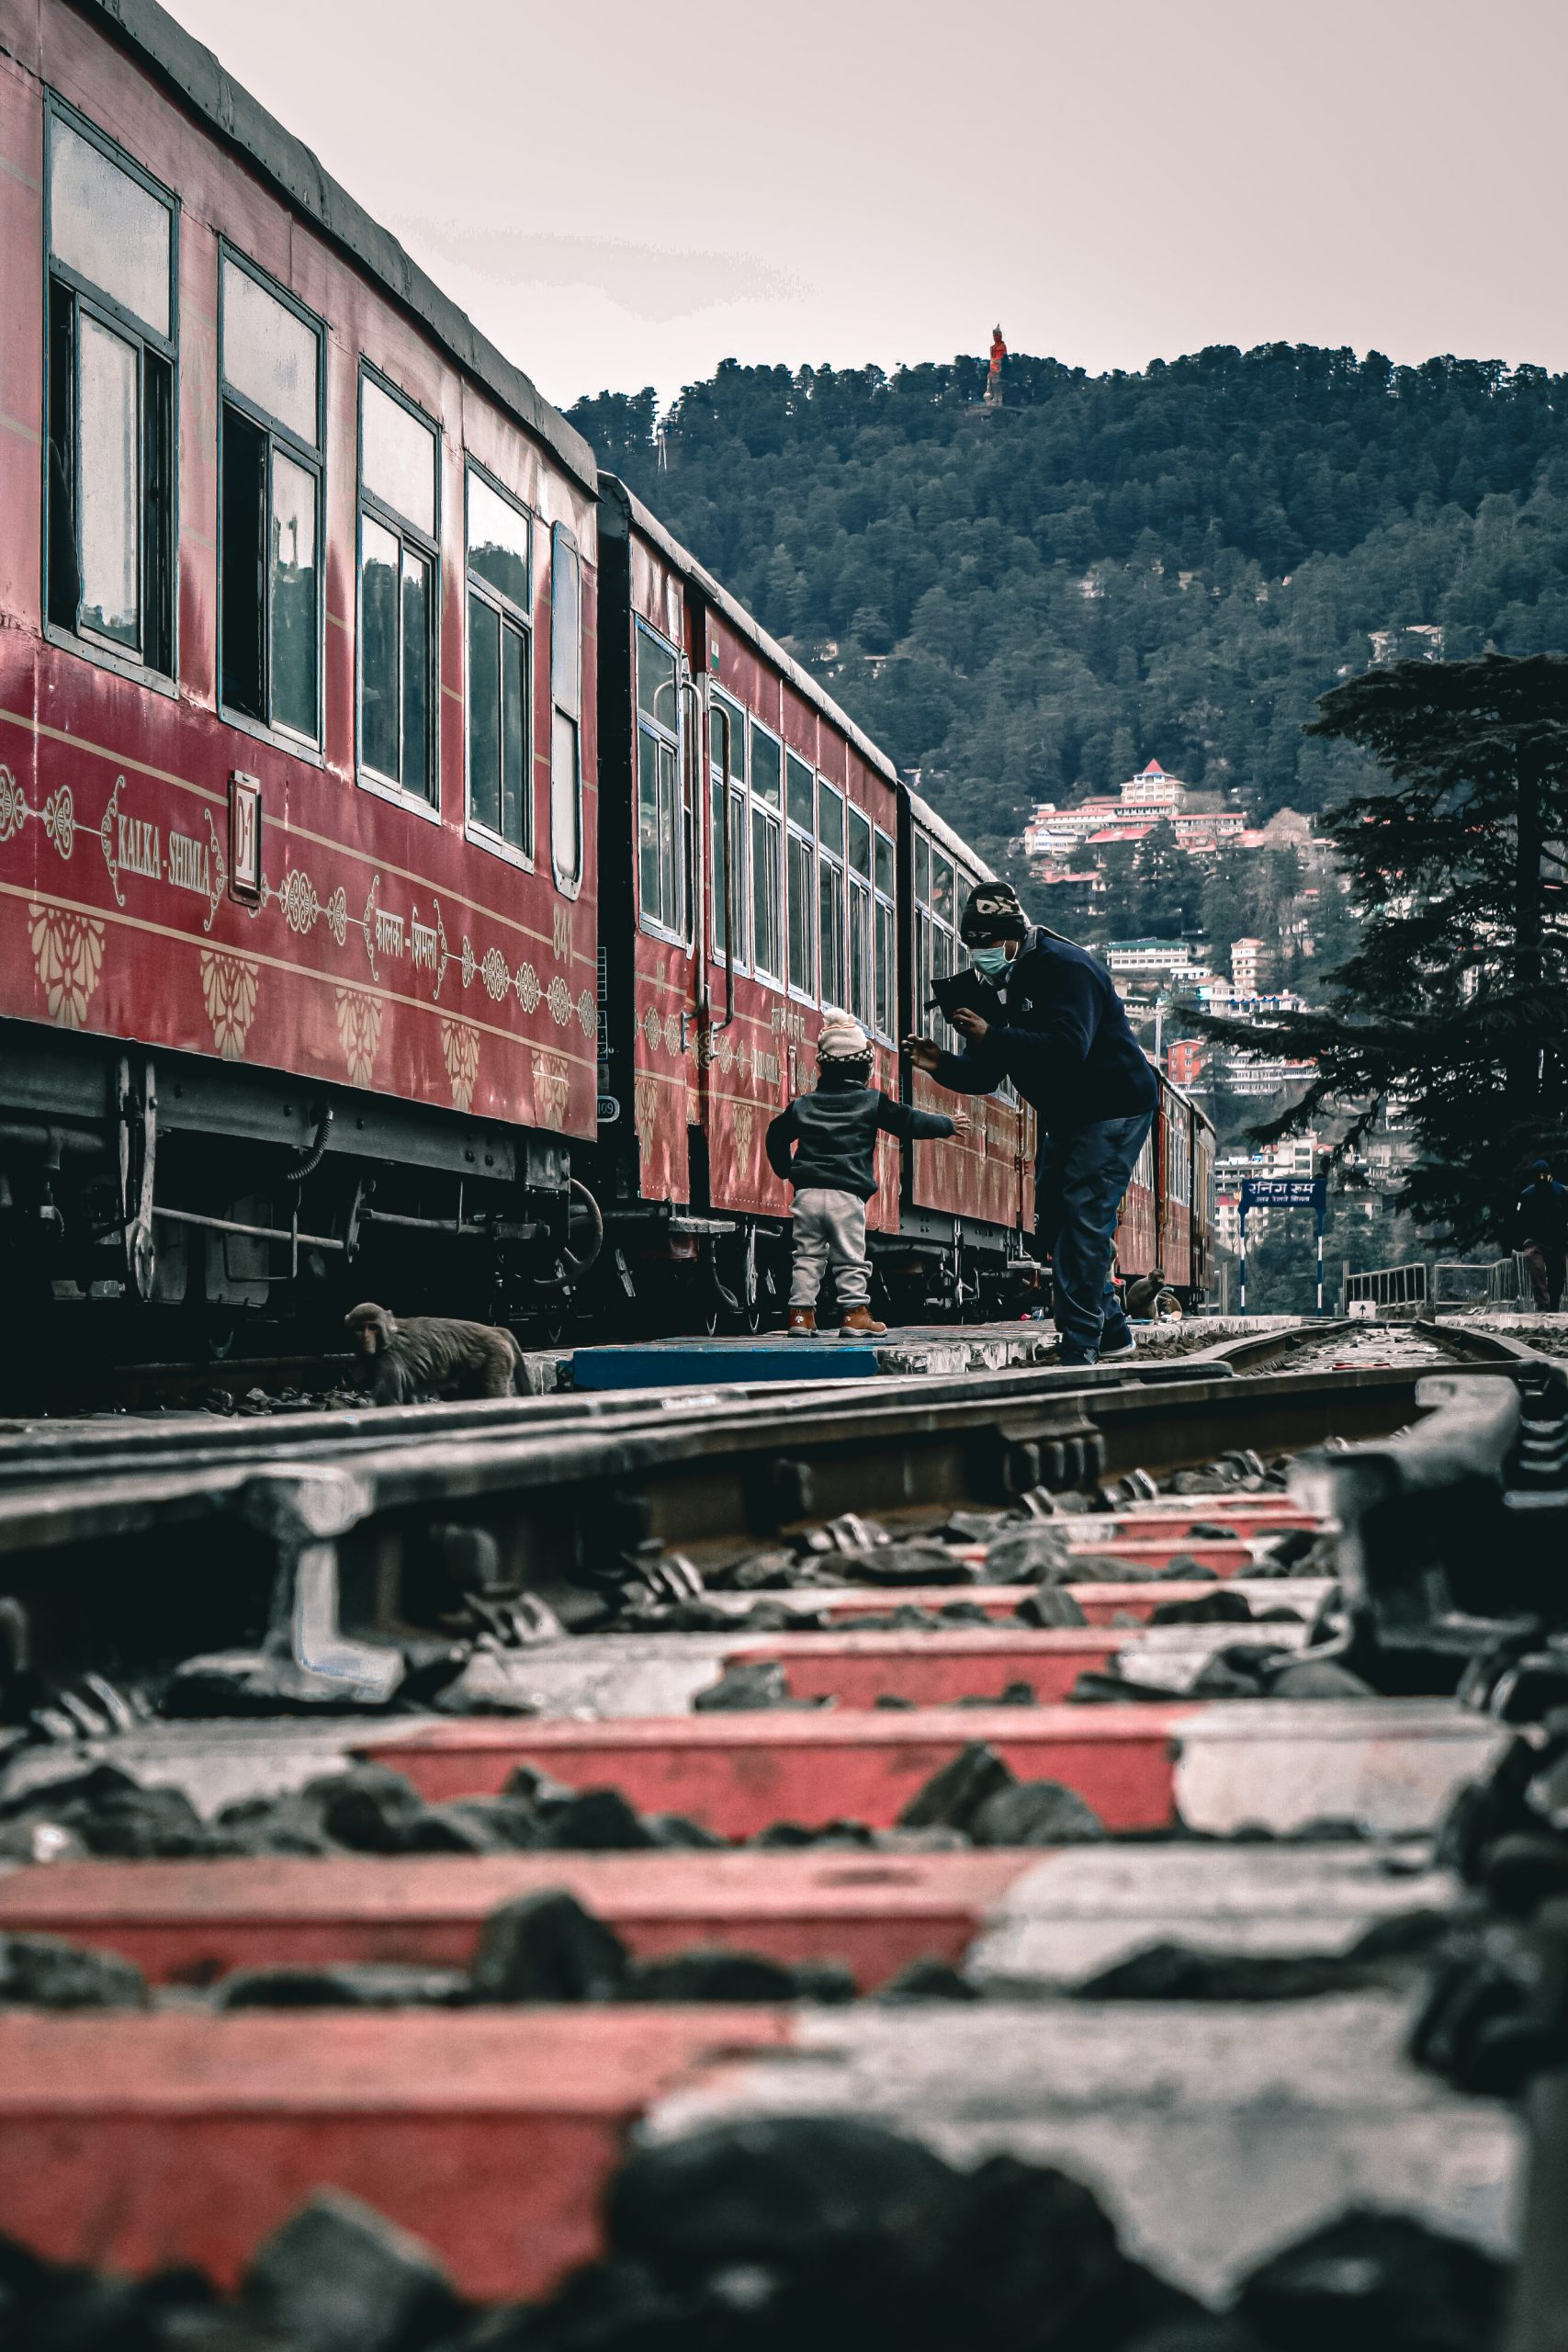 A train in Shimla